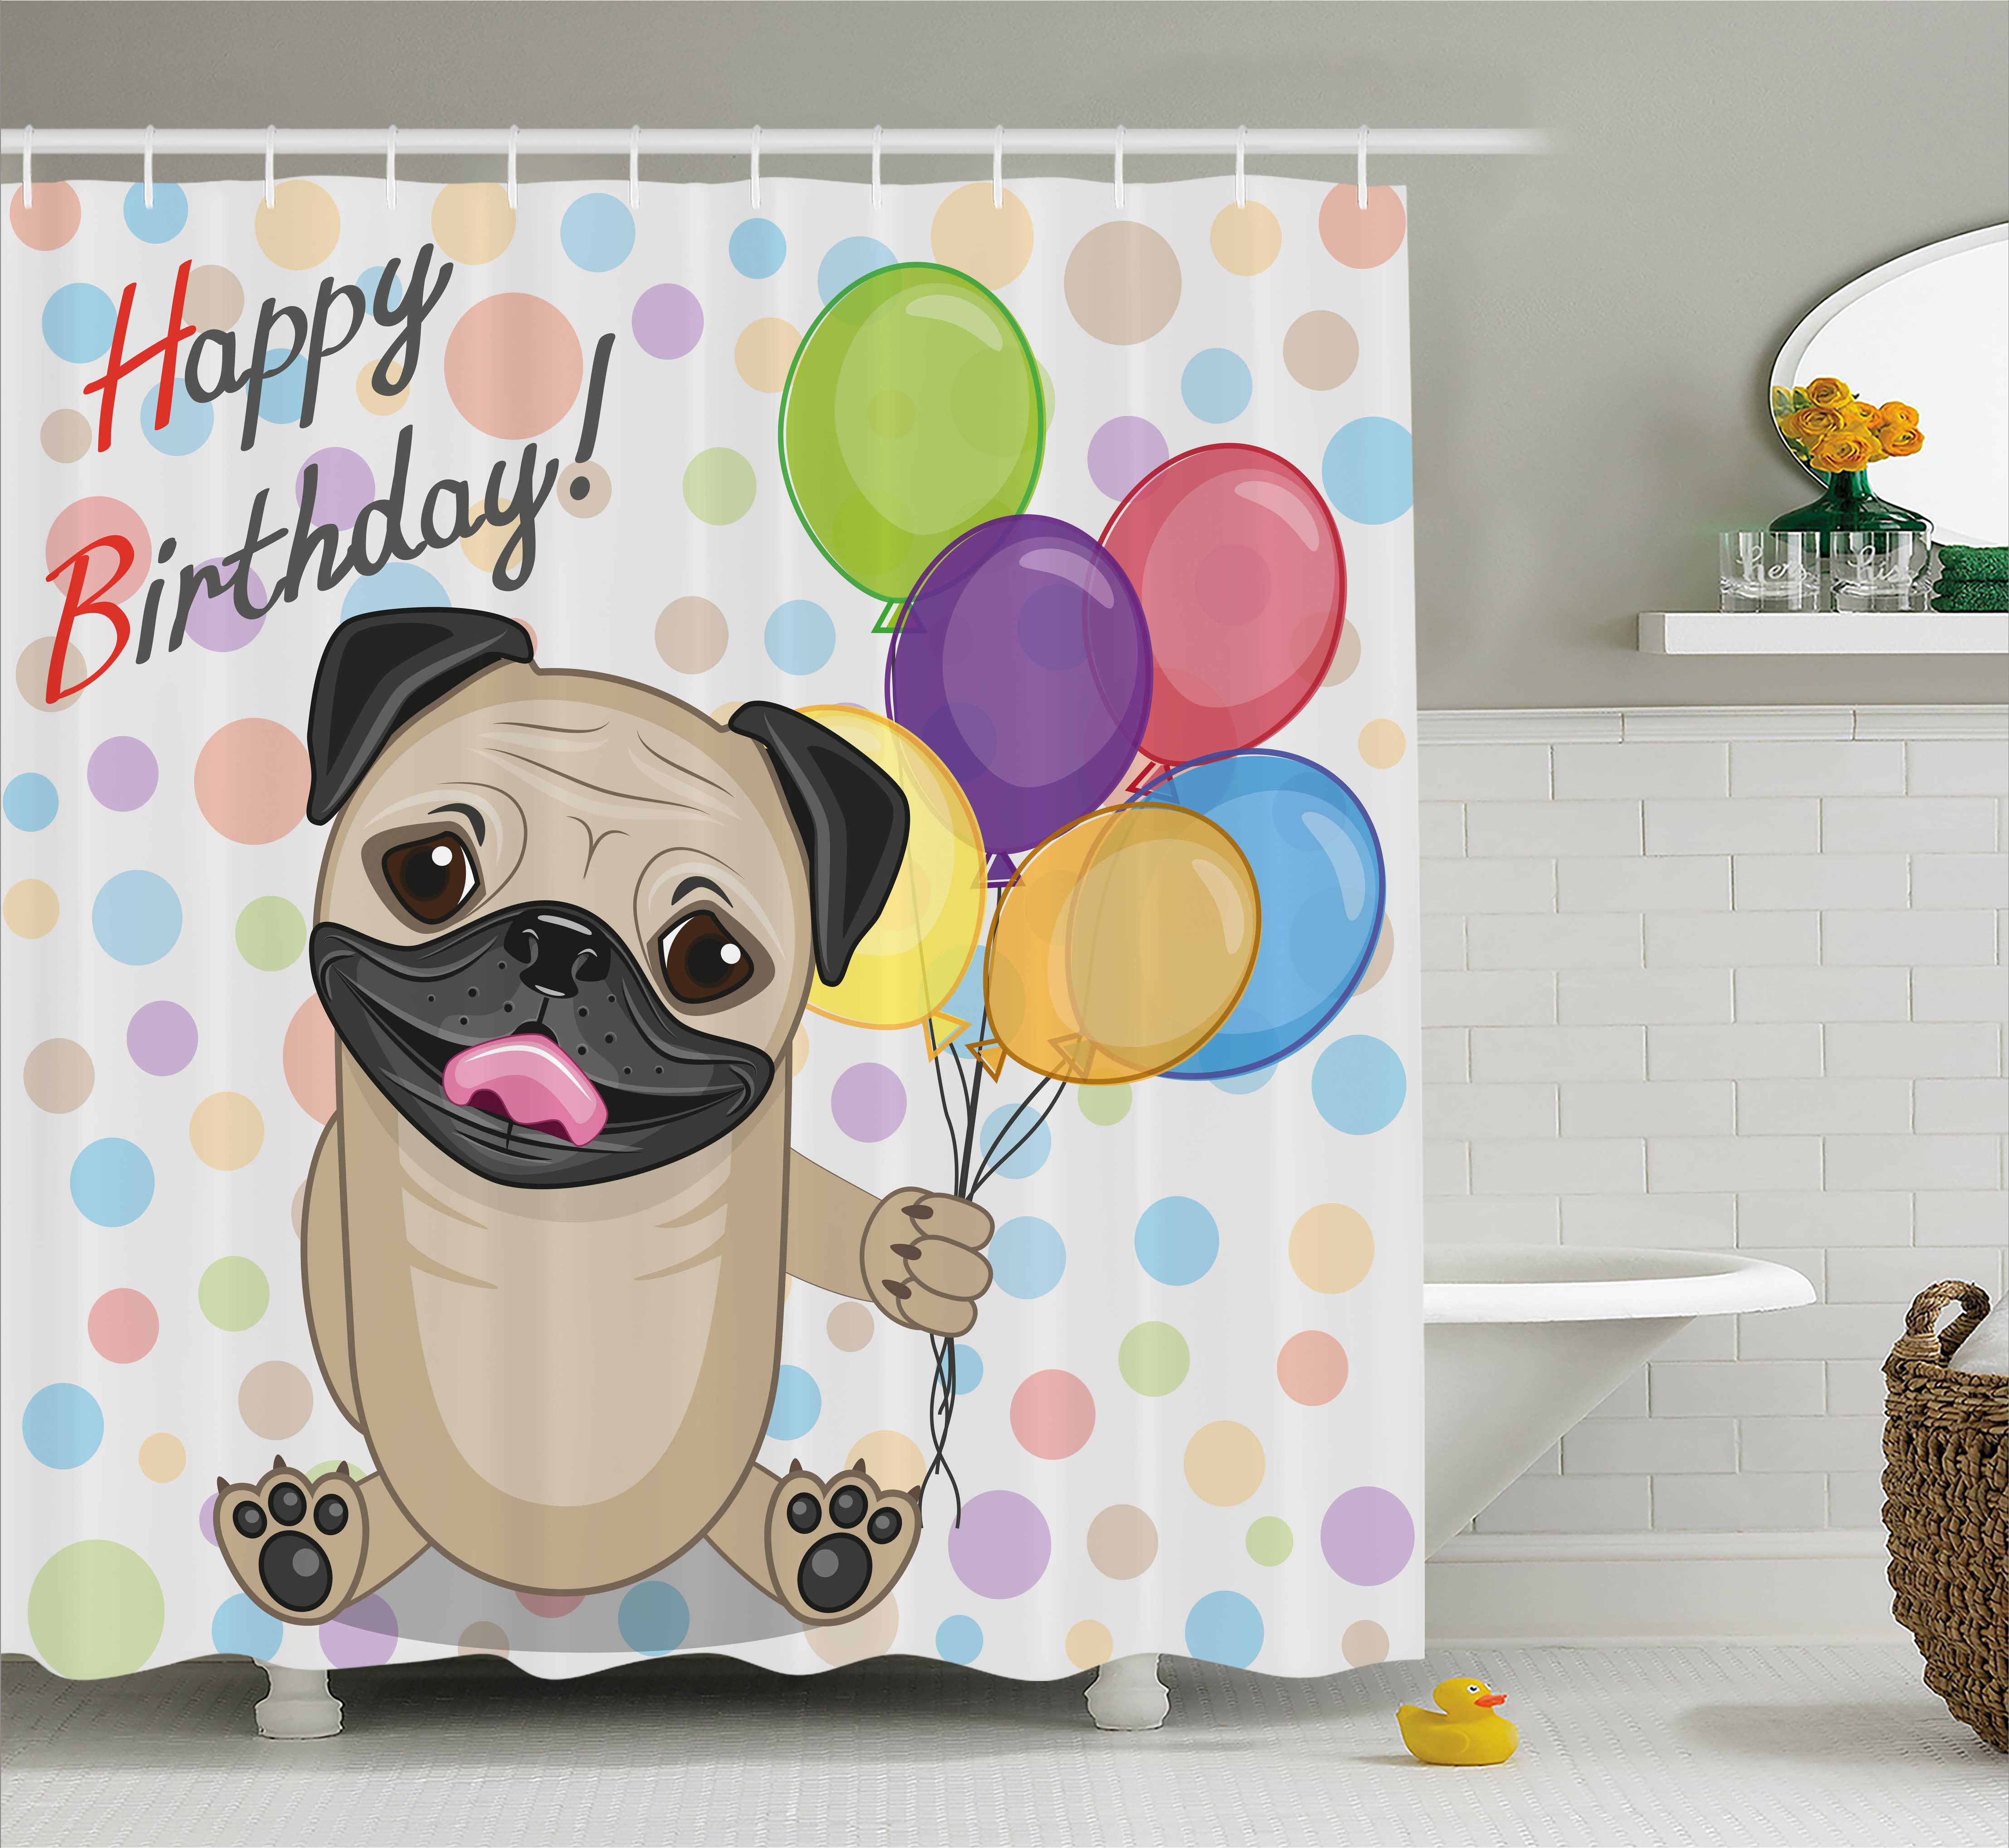 Birthday Decorations For Kids Shower Curtain Animal Cute Dog Smiling Pug With Party Balloons Greeting Card Fabric Bathroom Set Hooks